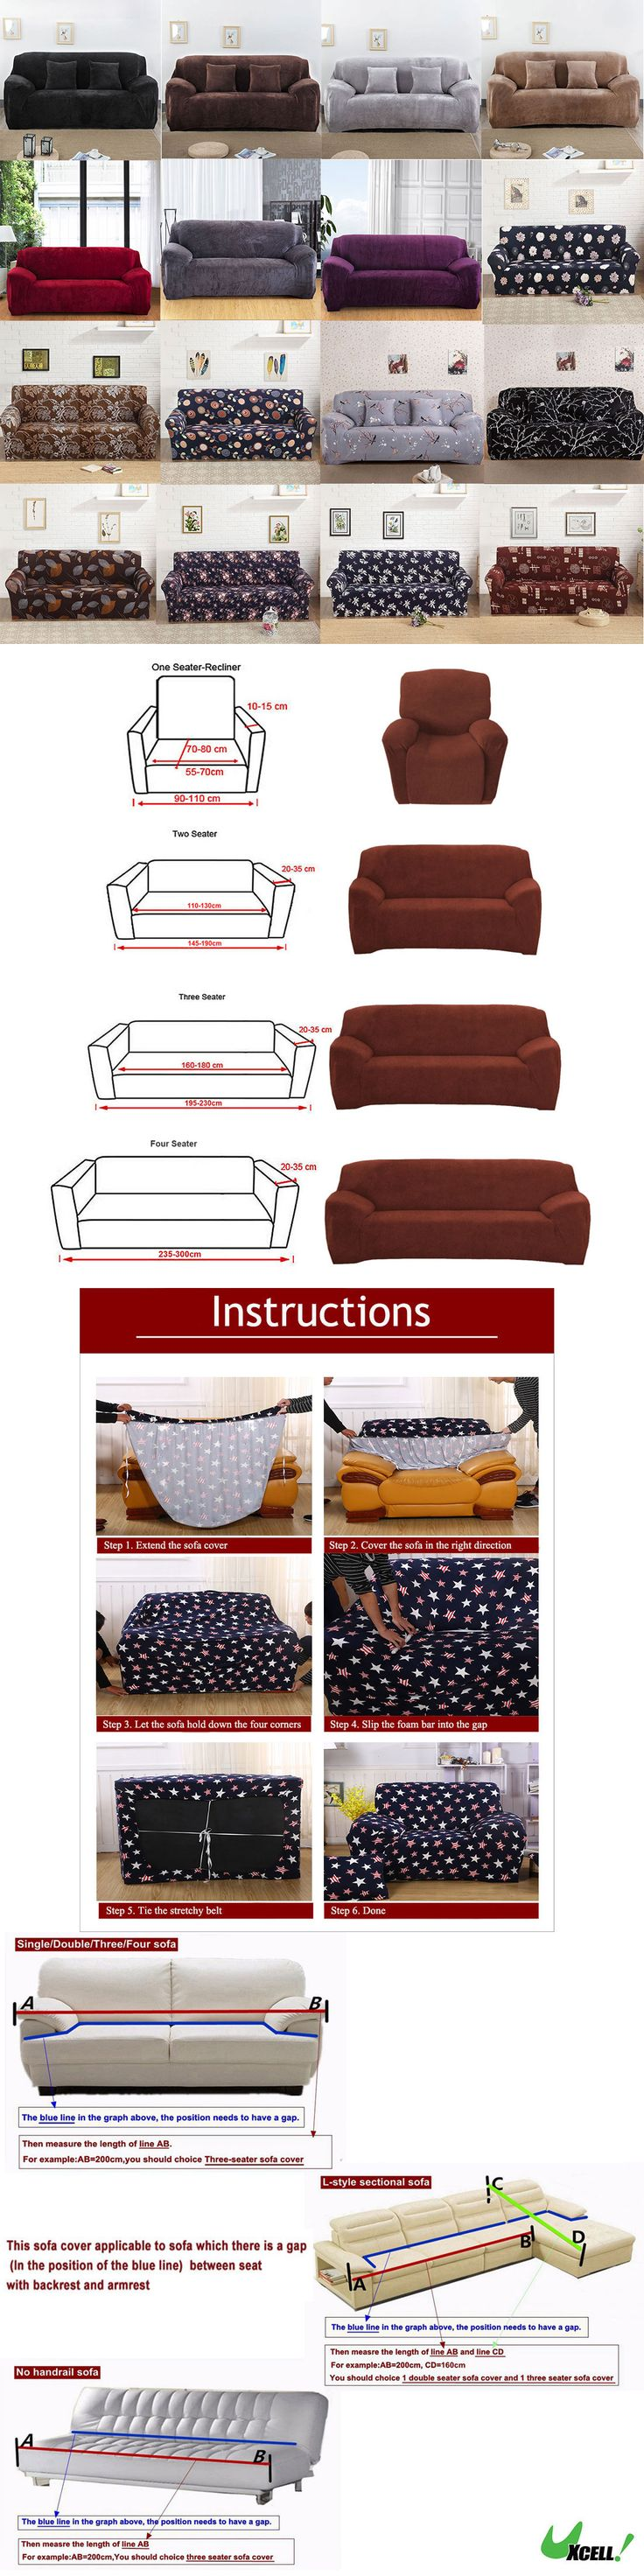 furniture: L-Shaped Stretch Sofa Covers Chair Covers Couch Sofa Slipcovers For 1 2 3 Seater BUY IT NOW ONLY: $42.99